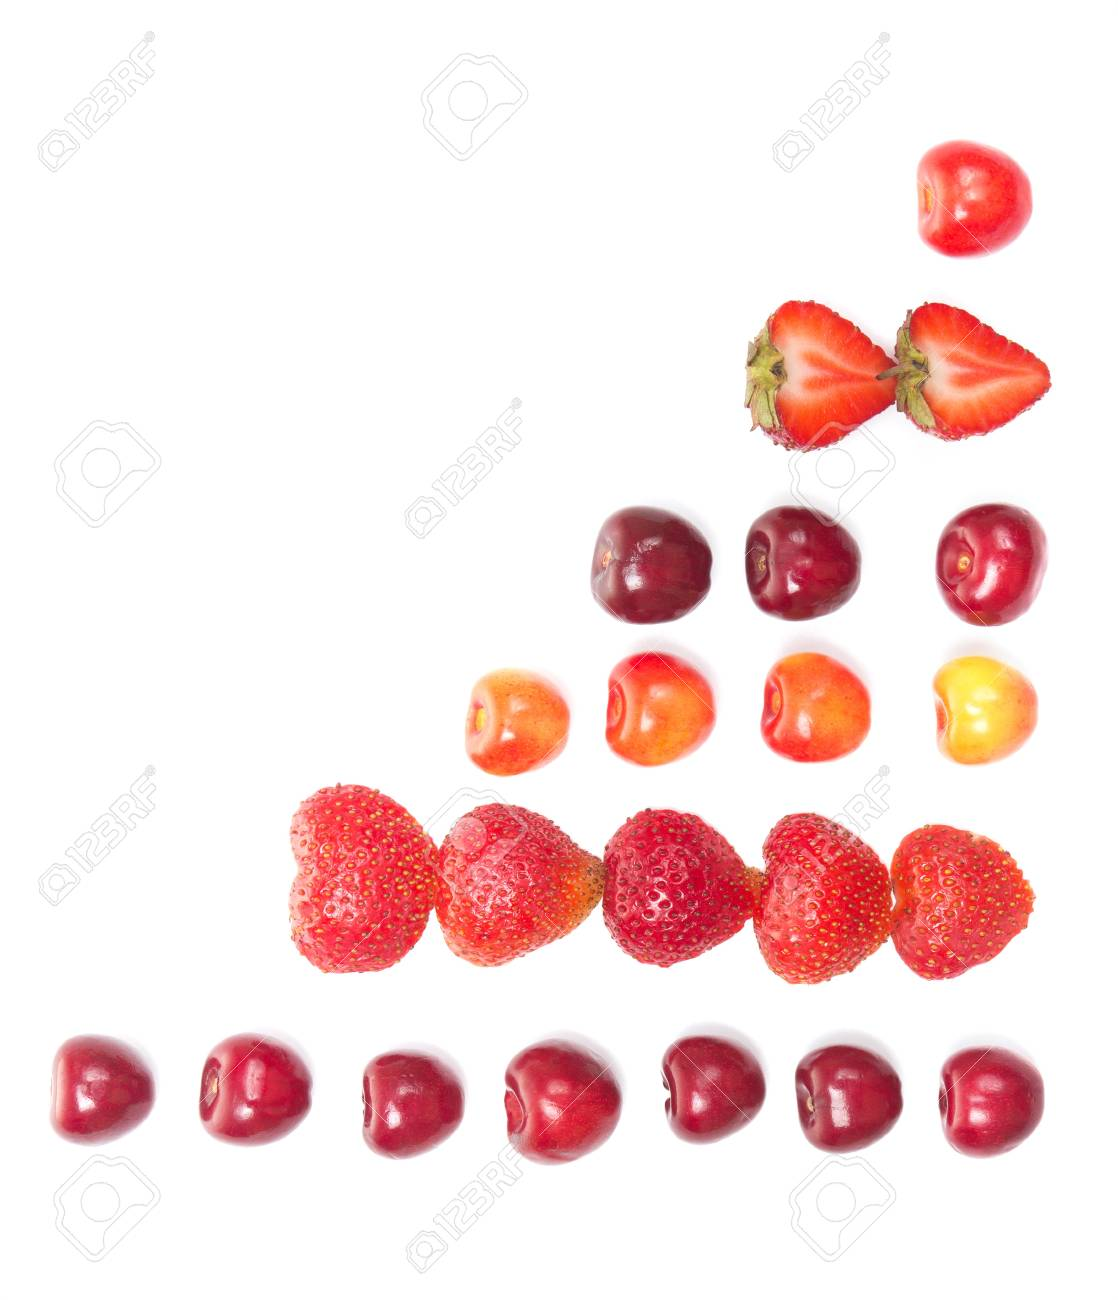 diagram shaped from fresh cherries and strawberries on white background  stock photo - 14403631